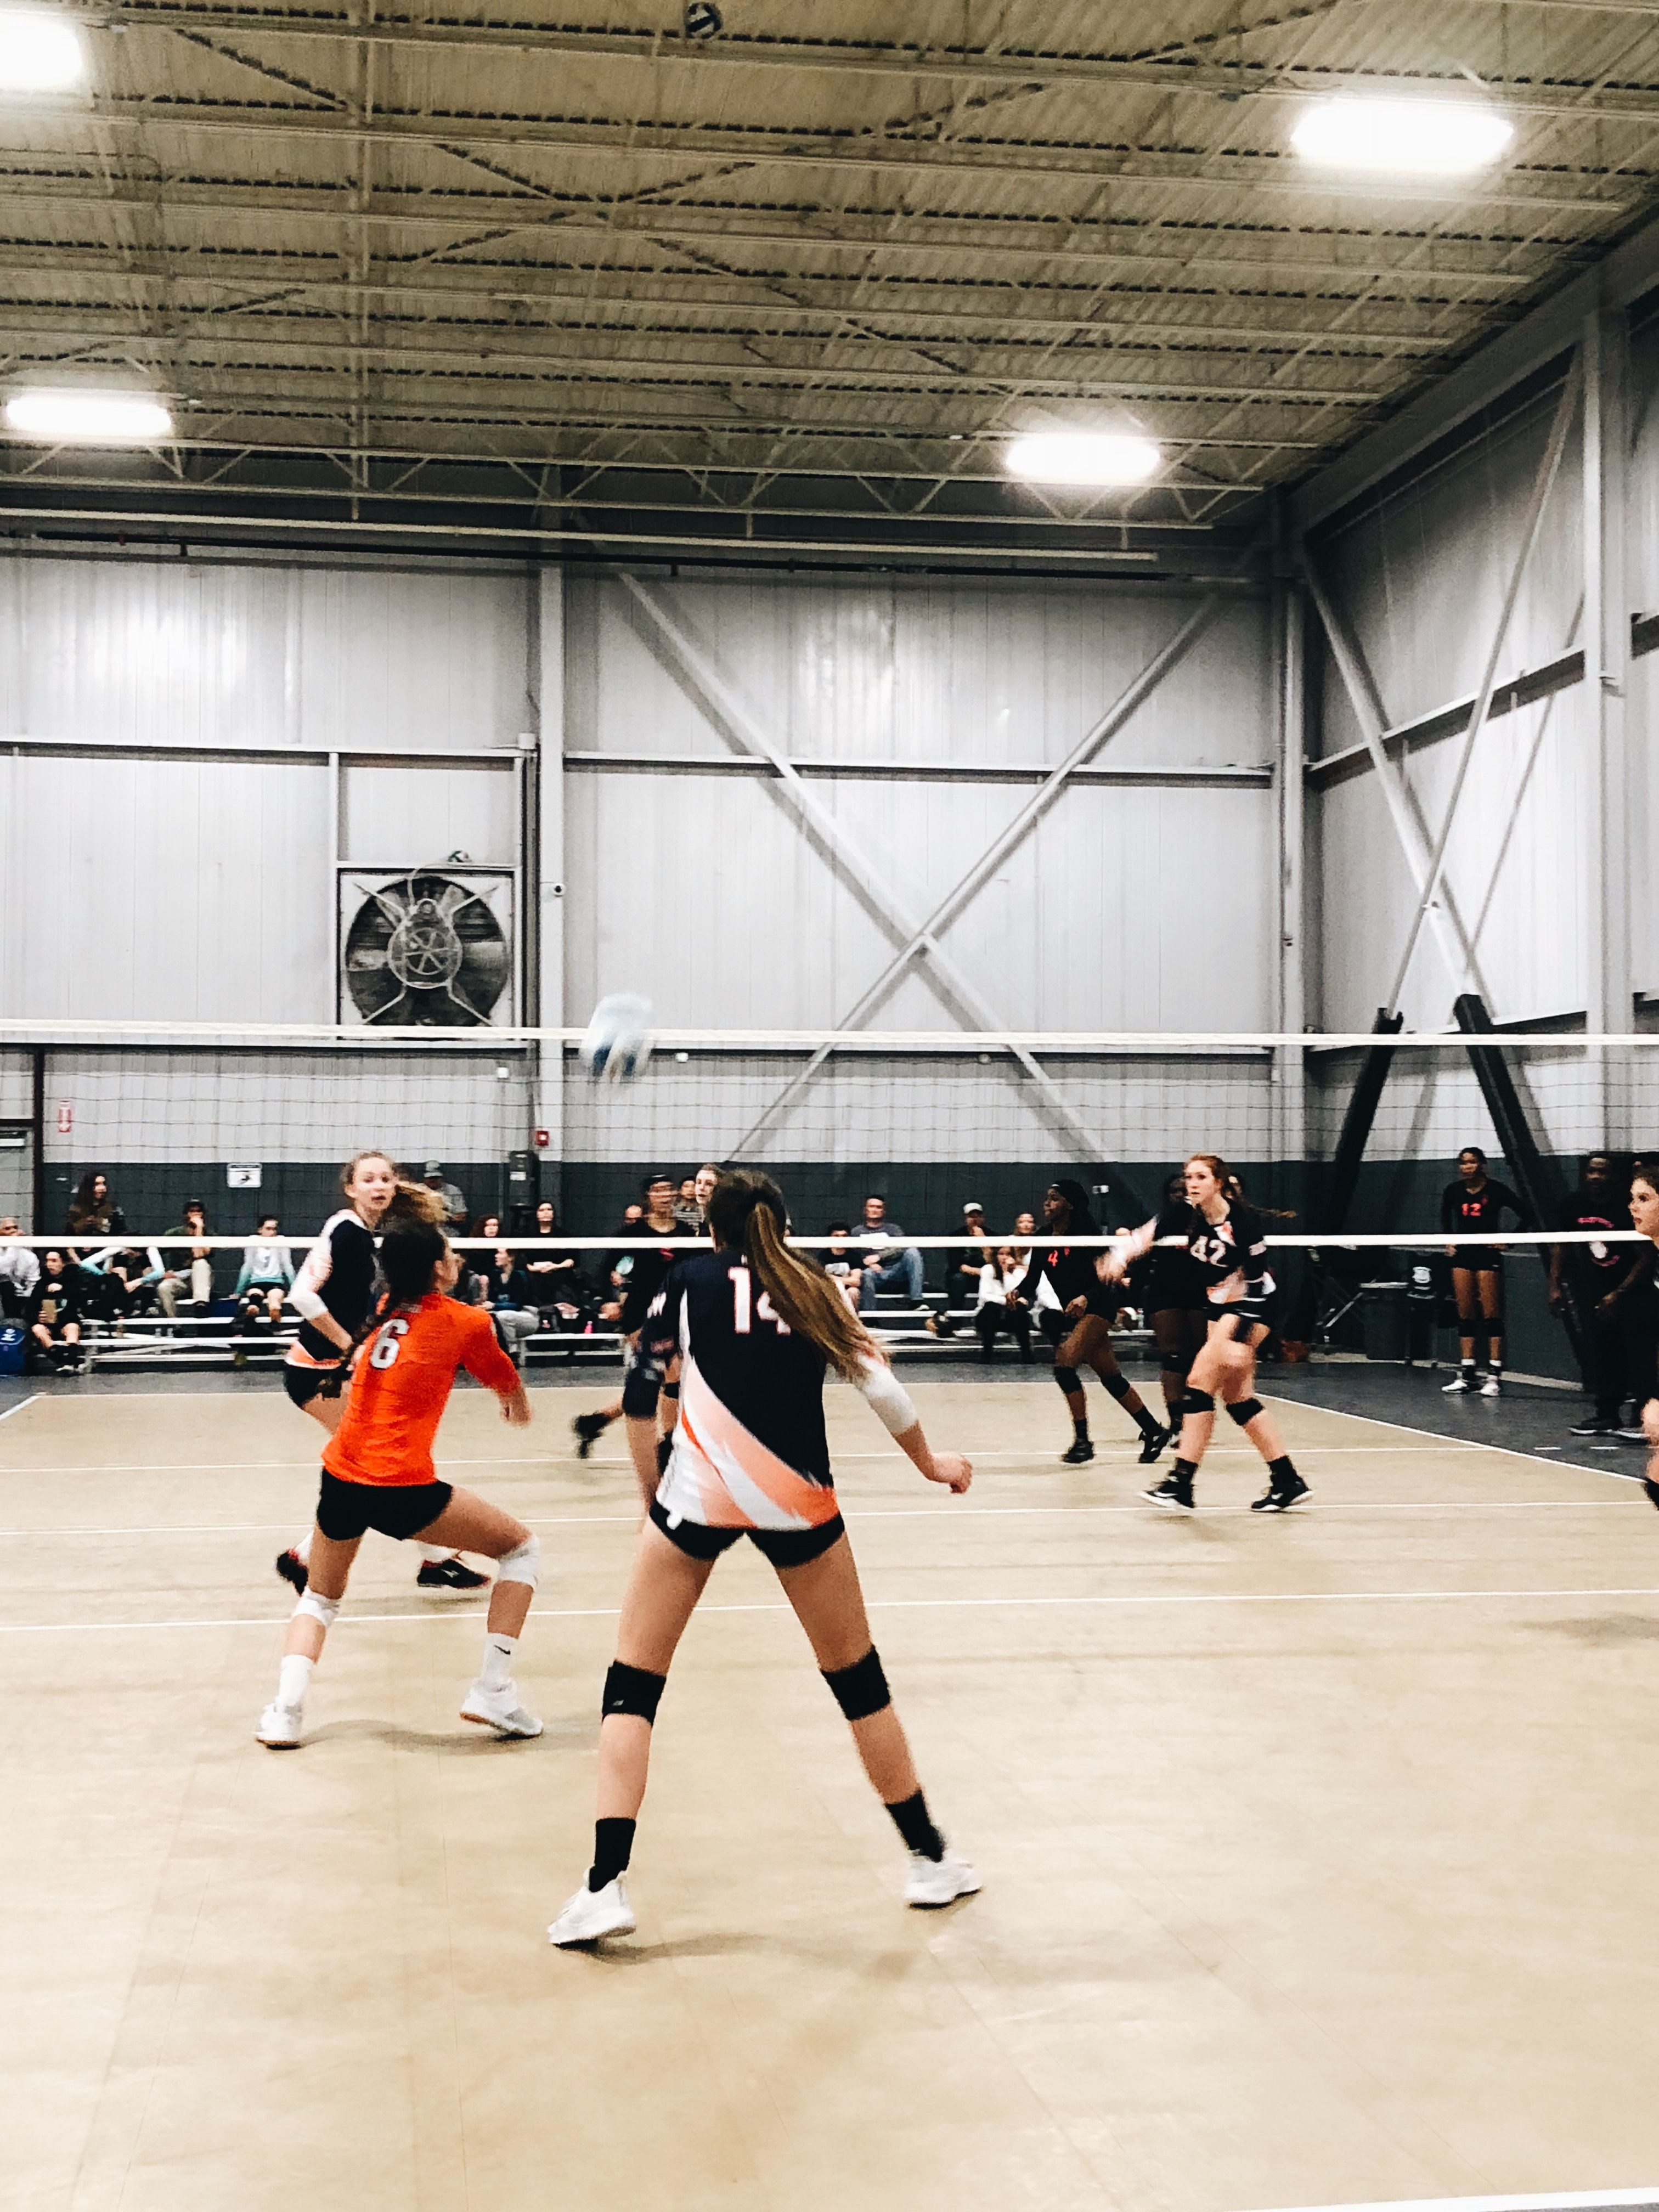 Pin By Joy Bartlow On High School Volleyball Pictures Volleyball Inspiration Volleyball